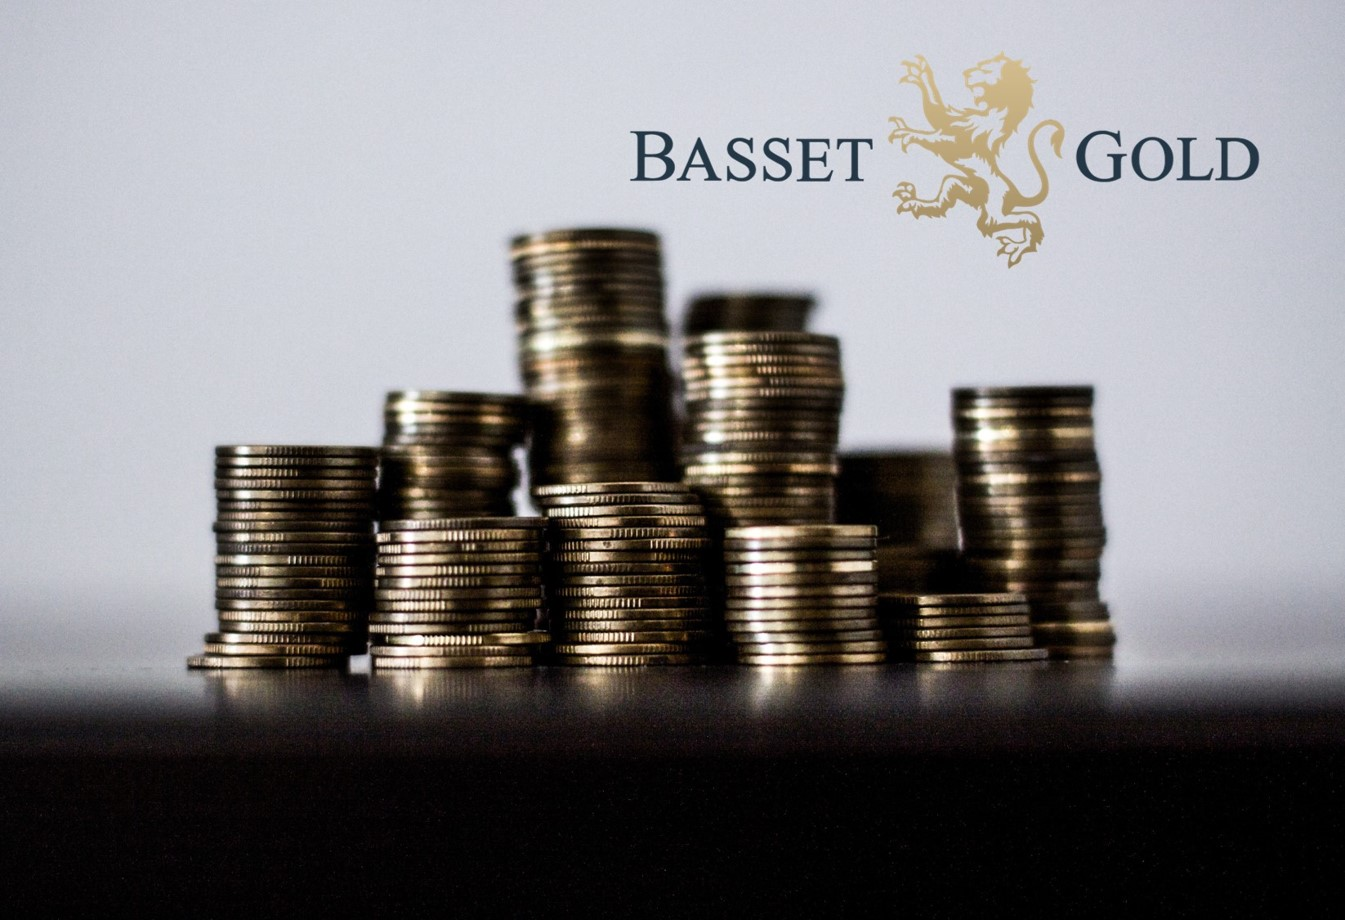 Mini-bond firm Basset & Gold goes bust